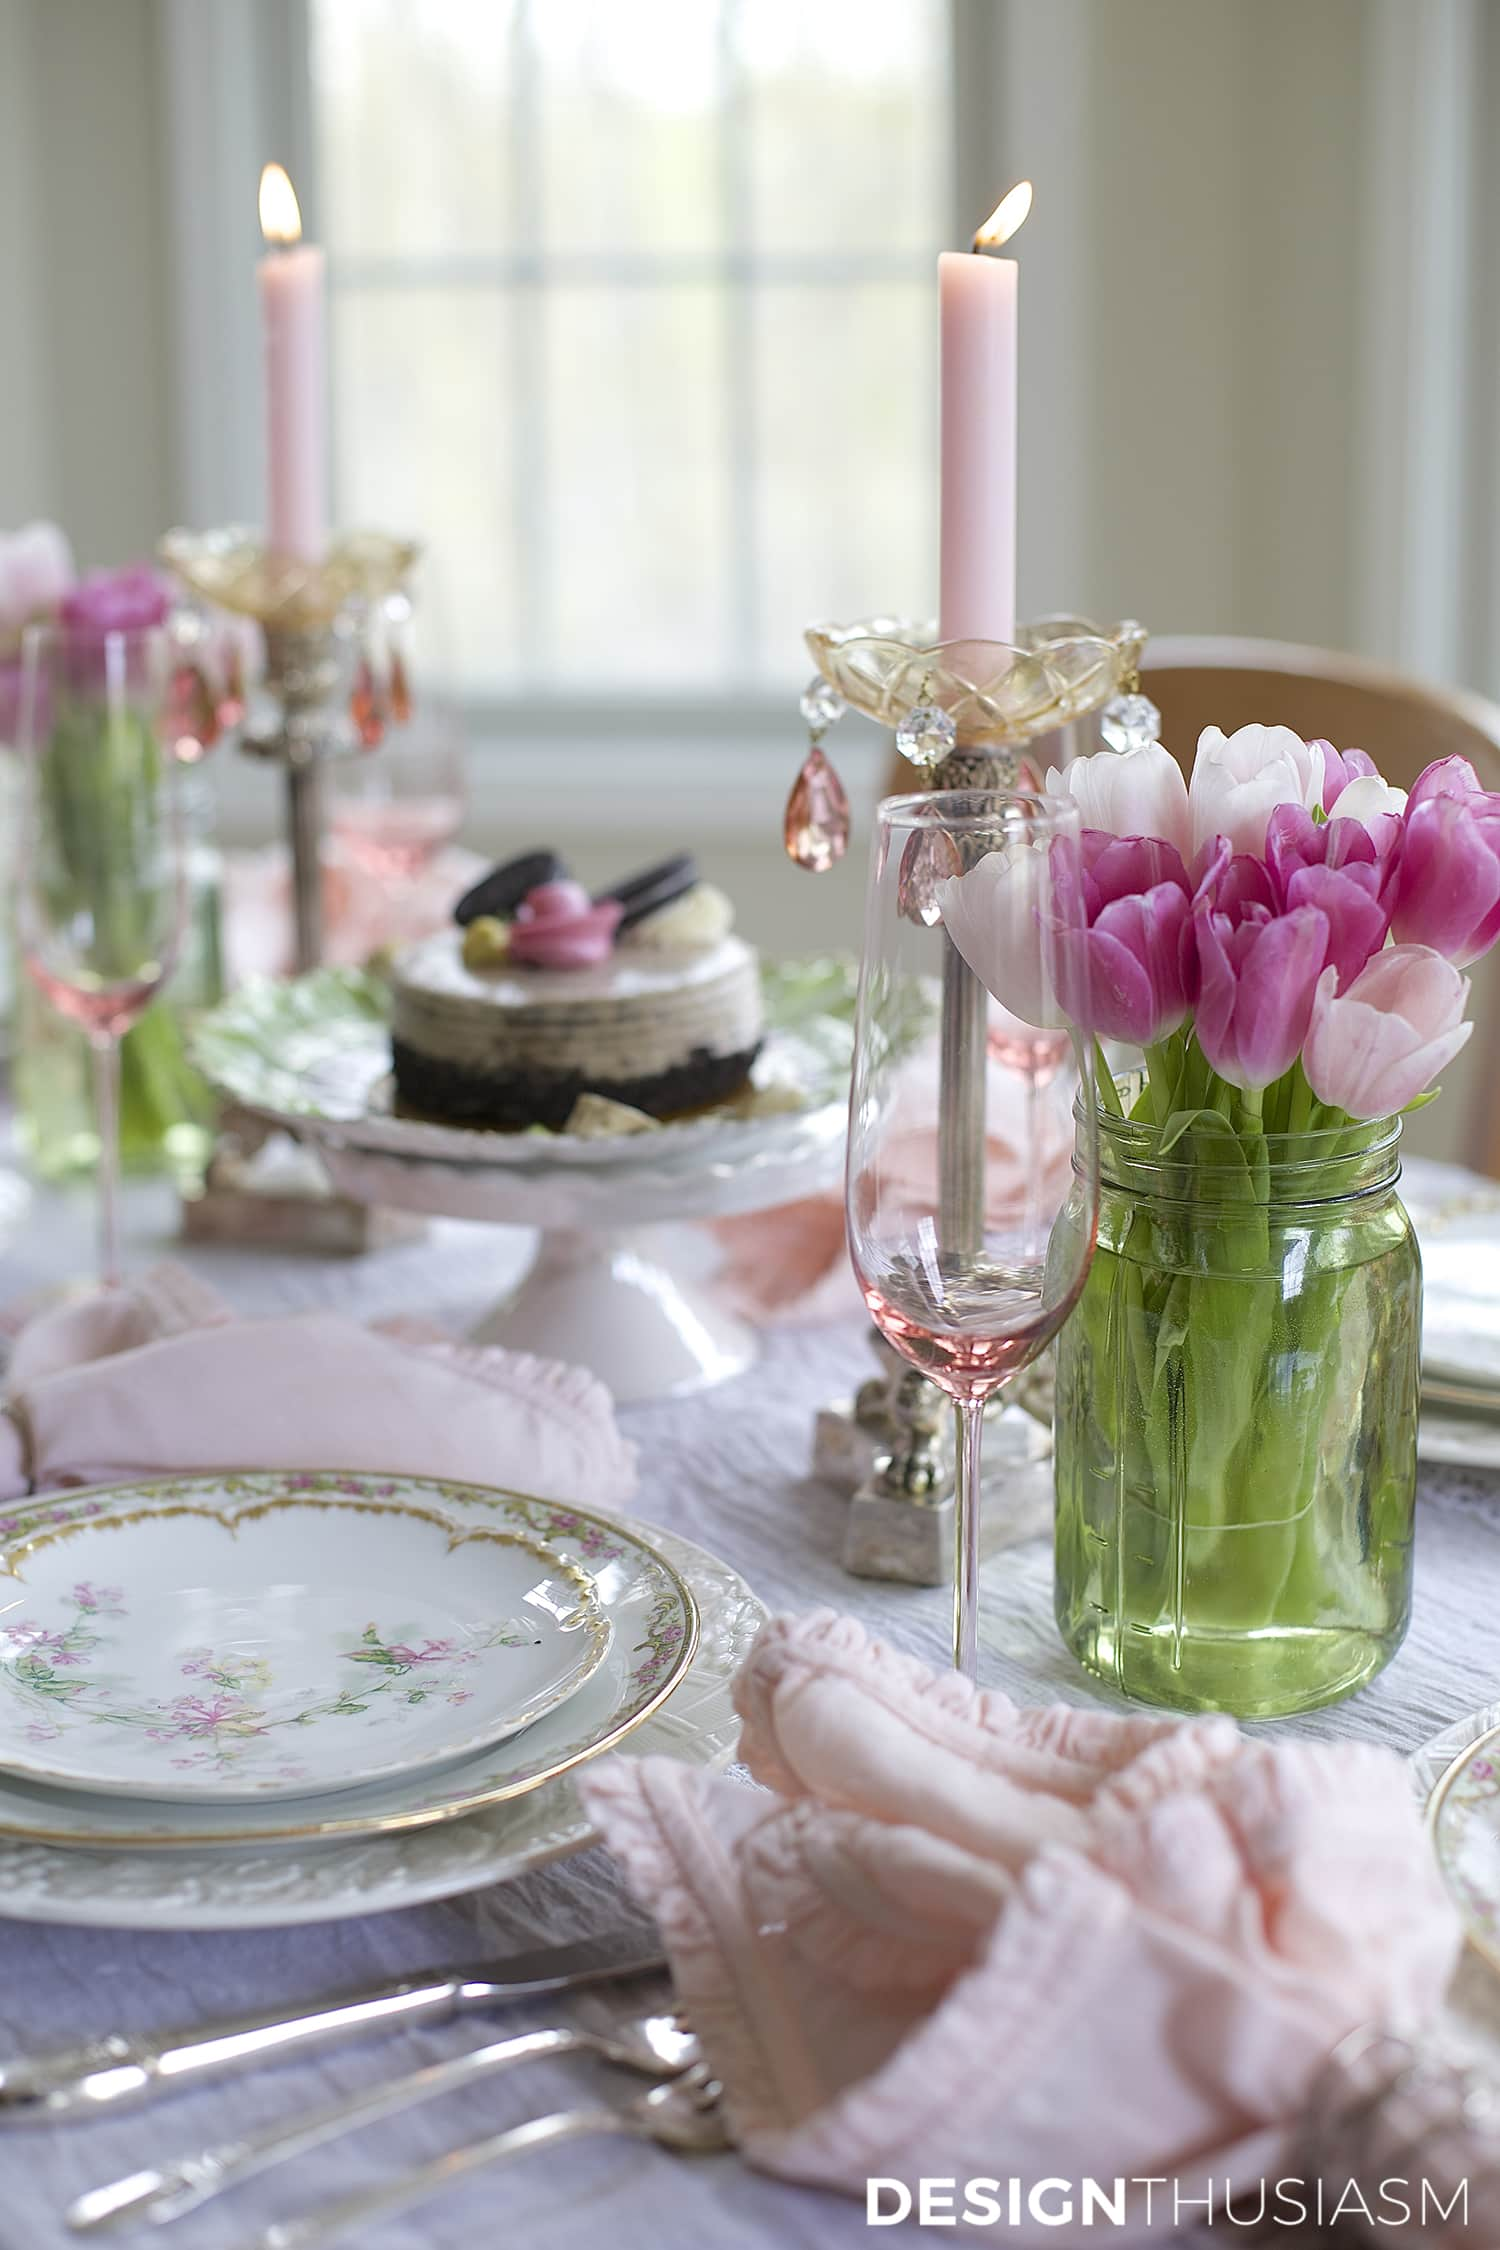 Using mason jar centerpieces to add color your table